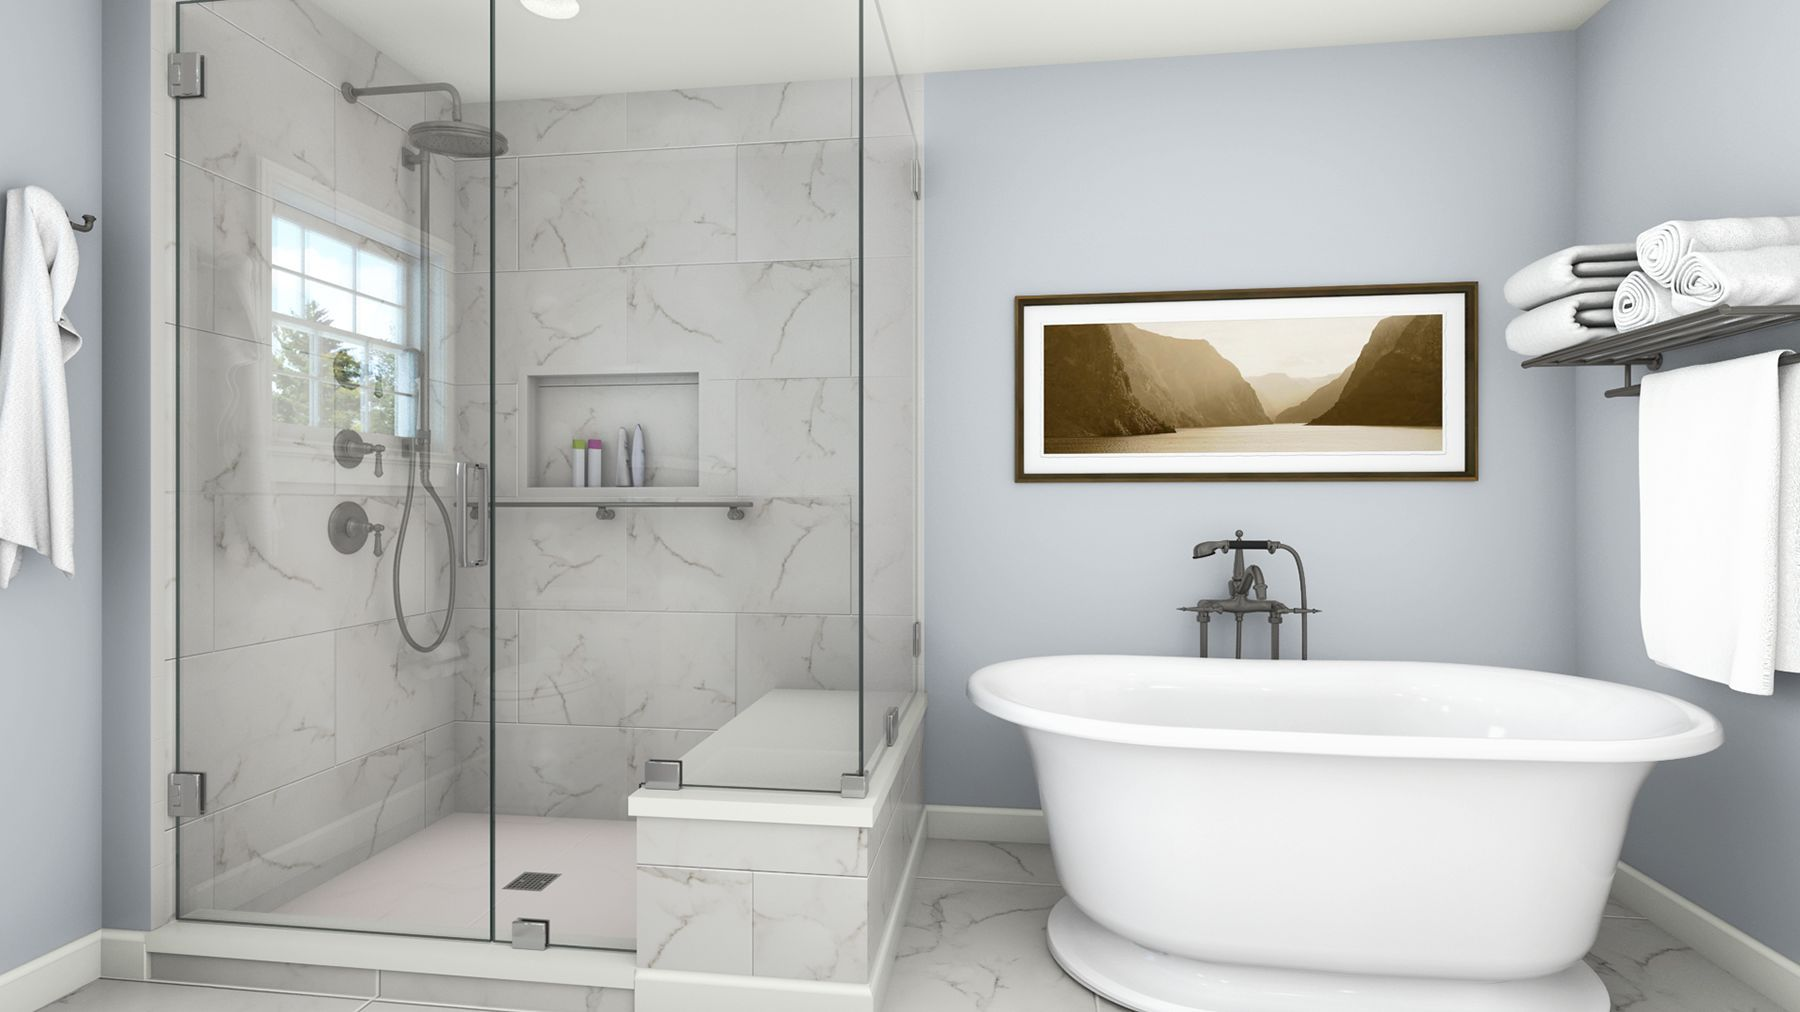 Work with a Kohler designer to create your dream bathroom in 3 steps ...